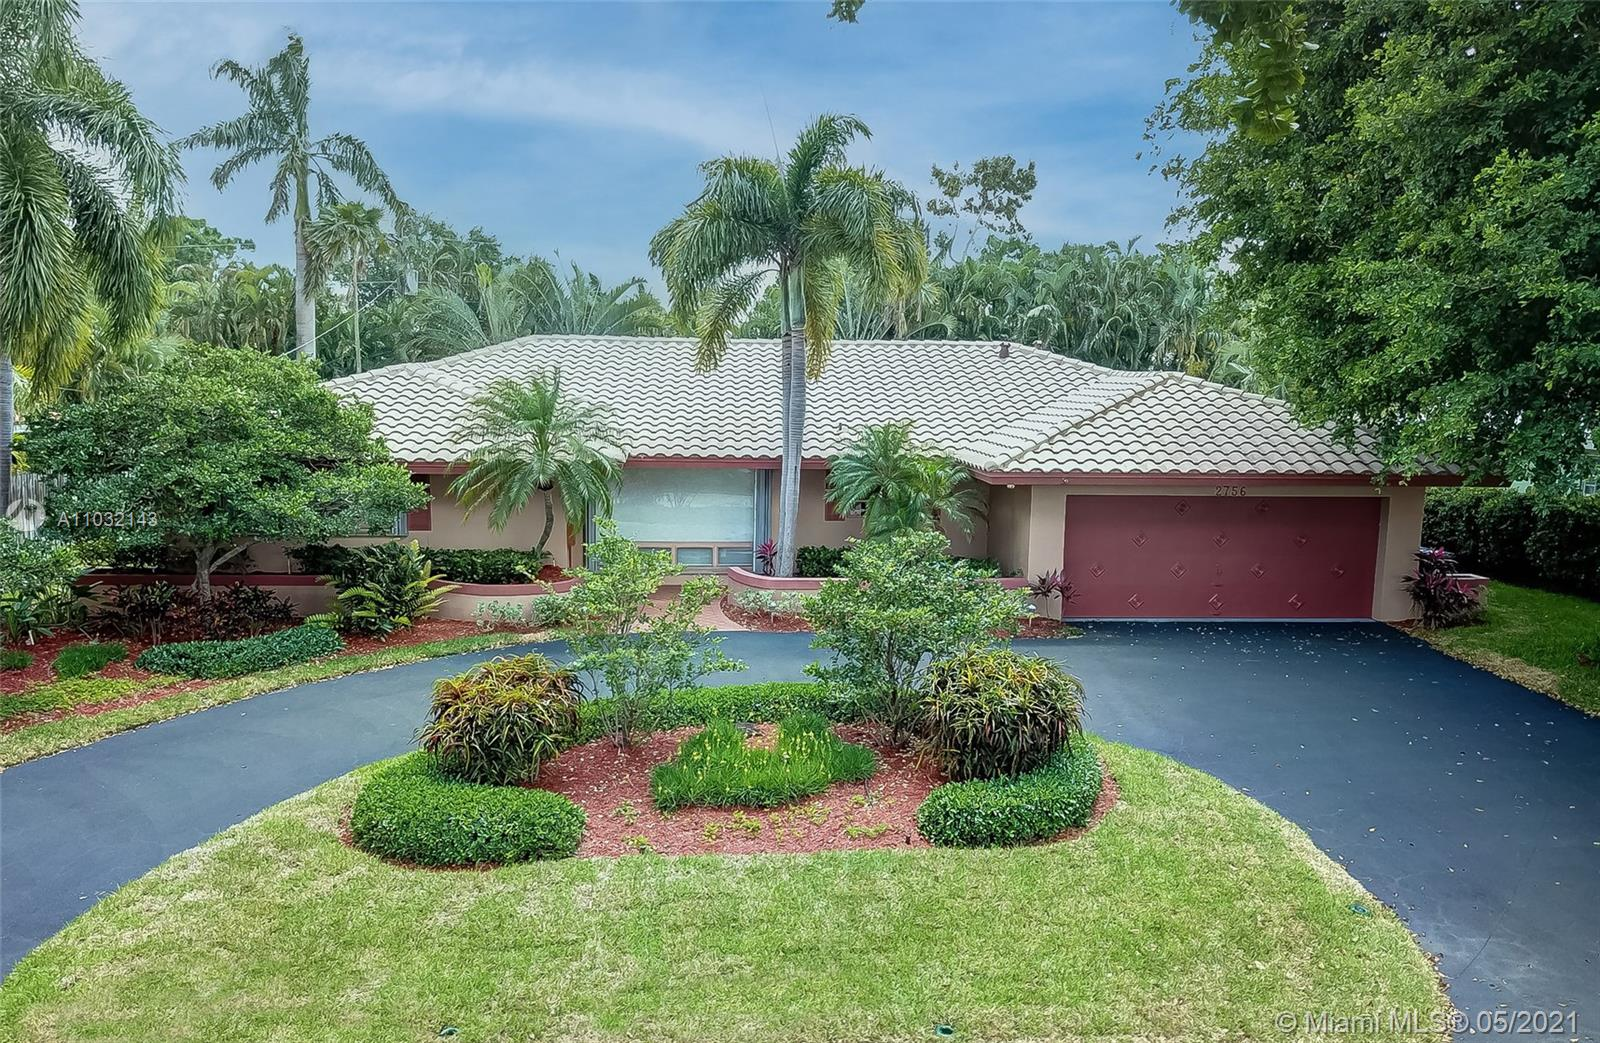 Own this elegant rare single-level 4BR home on the most coveted street in Coral Ridge Country Club. Oversized 11,850 SF lot enhances privacy and outdoor living space. Landscape architect designed butterfly garden with jasmine, trio of triangle palms and staghorn fern creates luxury tropical living. Cobalt-edged pool, white stone pool deck and custom bi-level wood deck for entertaining and relaxation. Flowing split BR plan with plaster crown molding, Saturnia floors and designer finishes in LR/DR/FR. Stainless KitchenAid appliances surround granite kitchen island and dovetail wood cabinets. Kohler porcelain/faucets in marble/granite baths. Built-in storage in 2 BR makes virtual working a breeze. Alexa smart phone controlled devices, 2-car garage. No HOA.